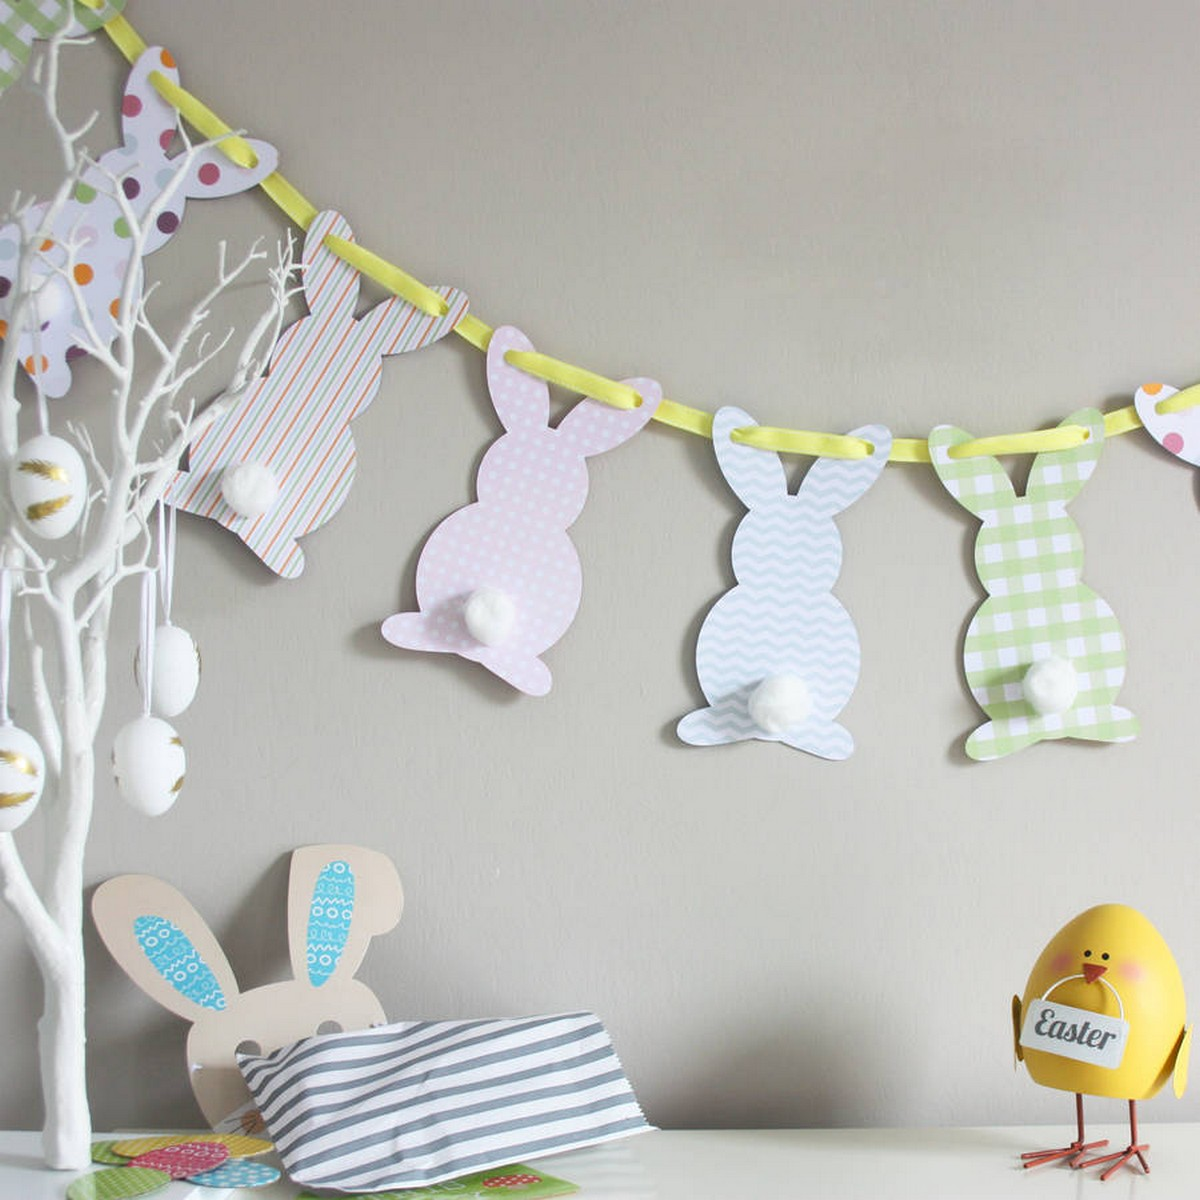 Cute Easter Bunny Decorating Ideas For Your Home - Home ...